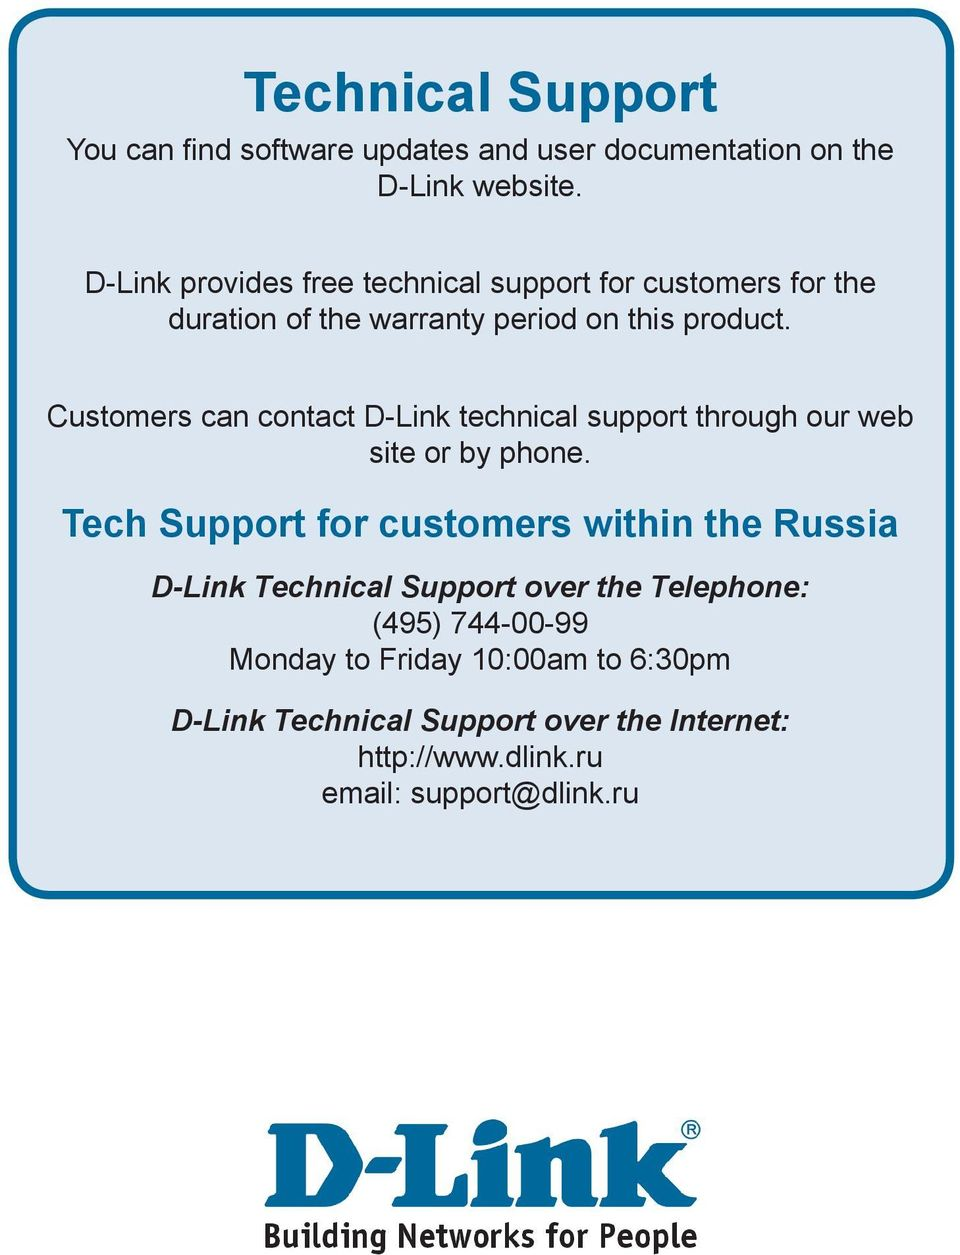 Customers can contact D-Link technical support through our web site or by phone.